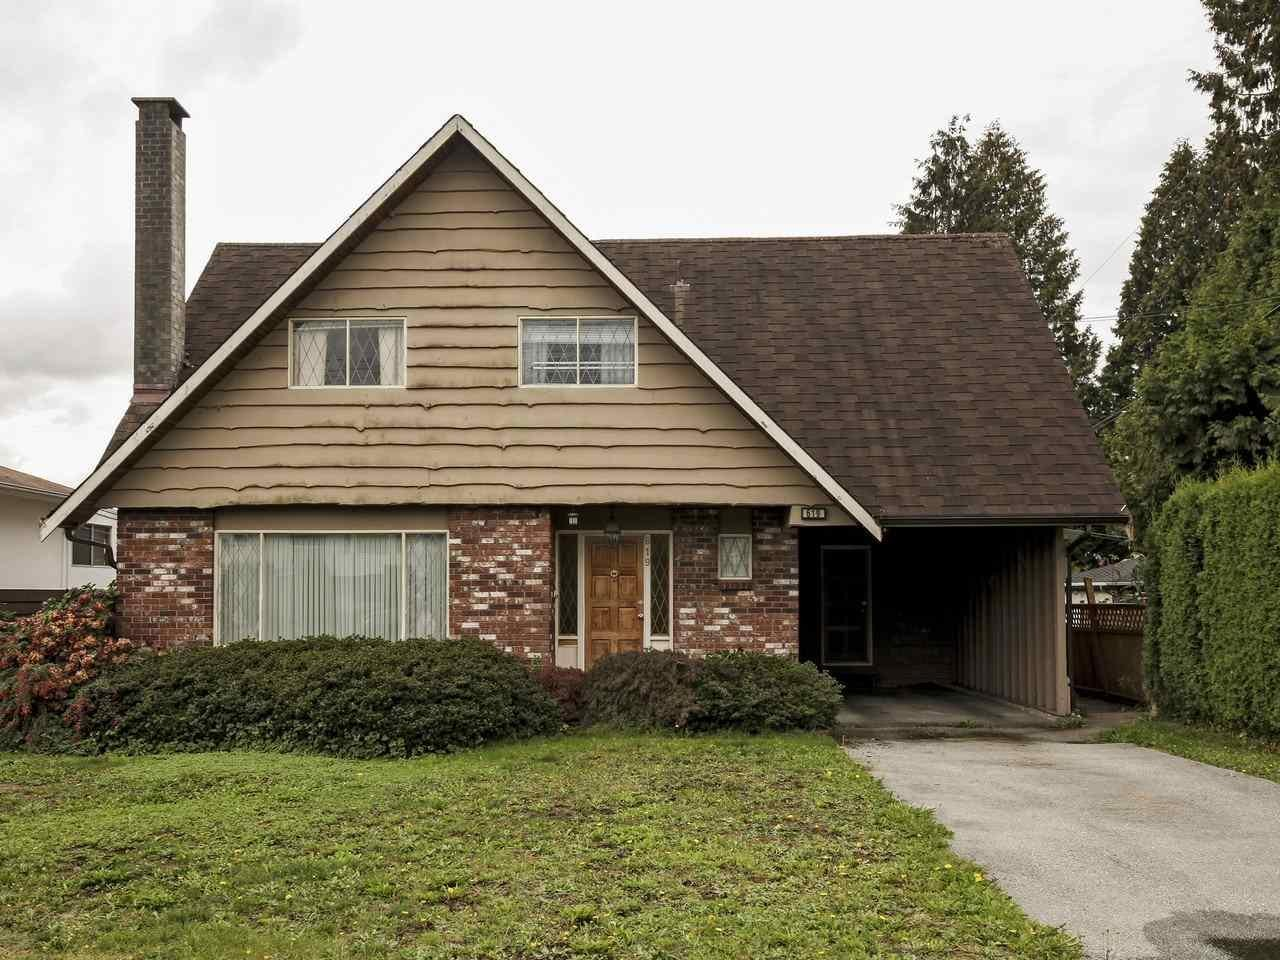 R2112542 - 619 E 16TH STREET, Boulevard, North Vancouver, BC - House/Single Family